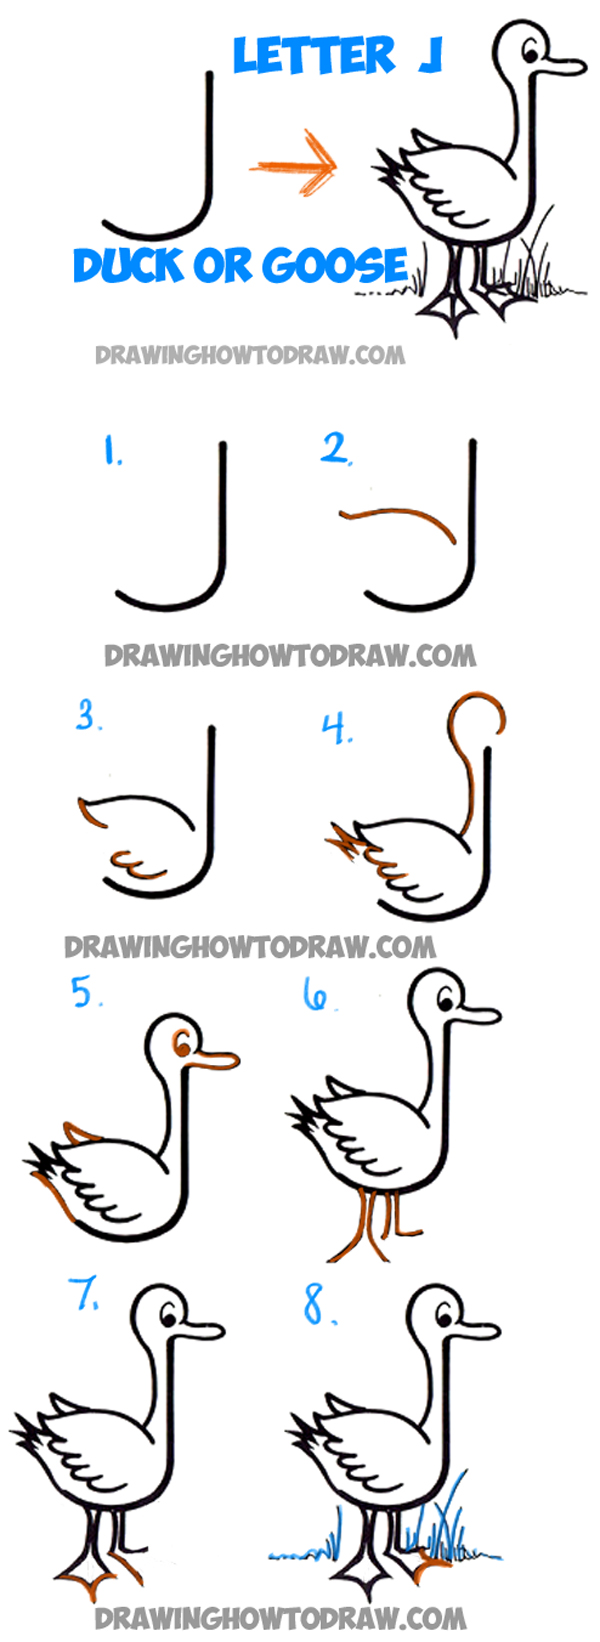 600x1642 How To Draw Cartoon Goose Or Duck From Letter J Shape